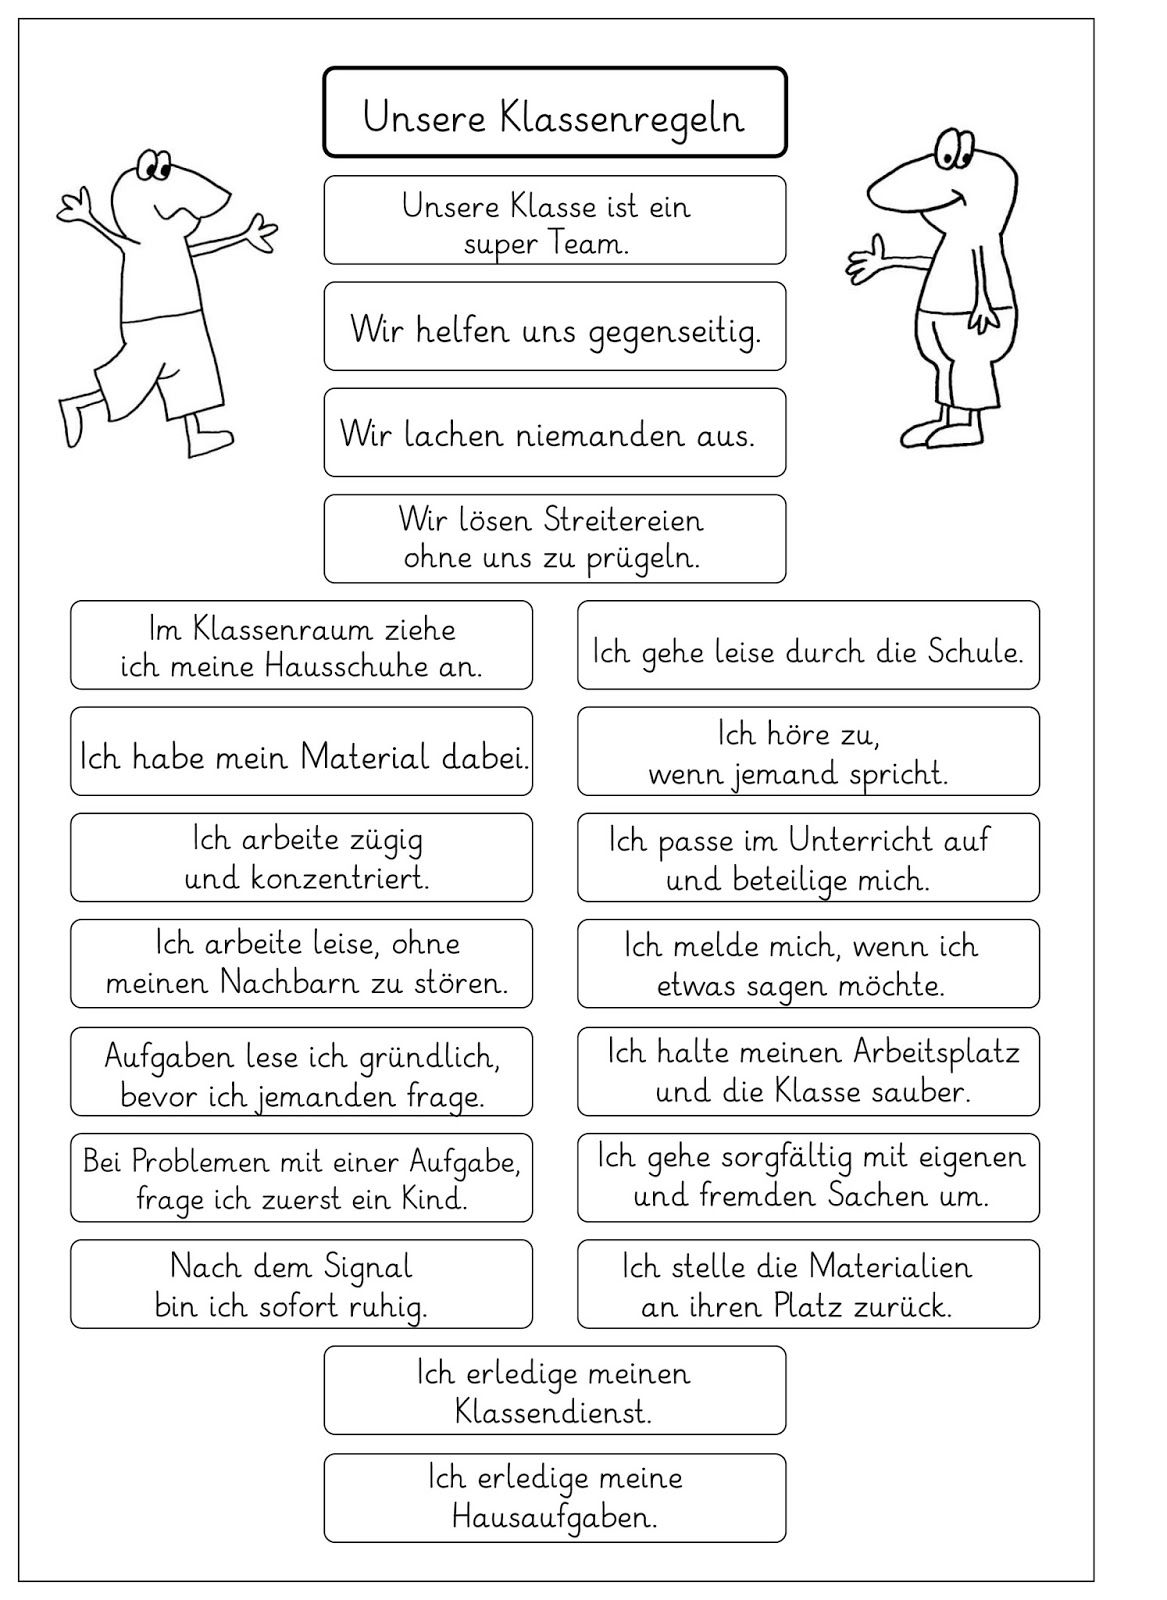 Pin by Sofia Lyk on Classroom Rules-Klassenregeln | Pinterest ...